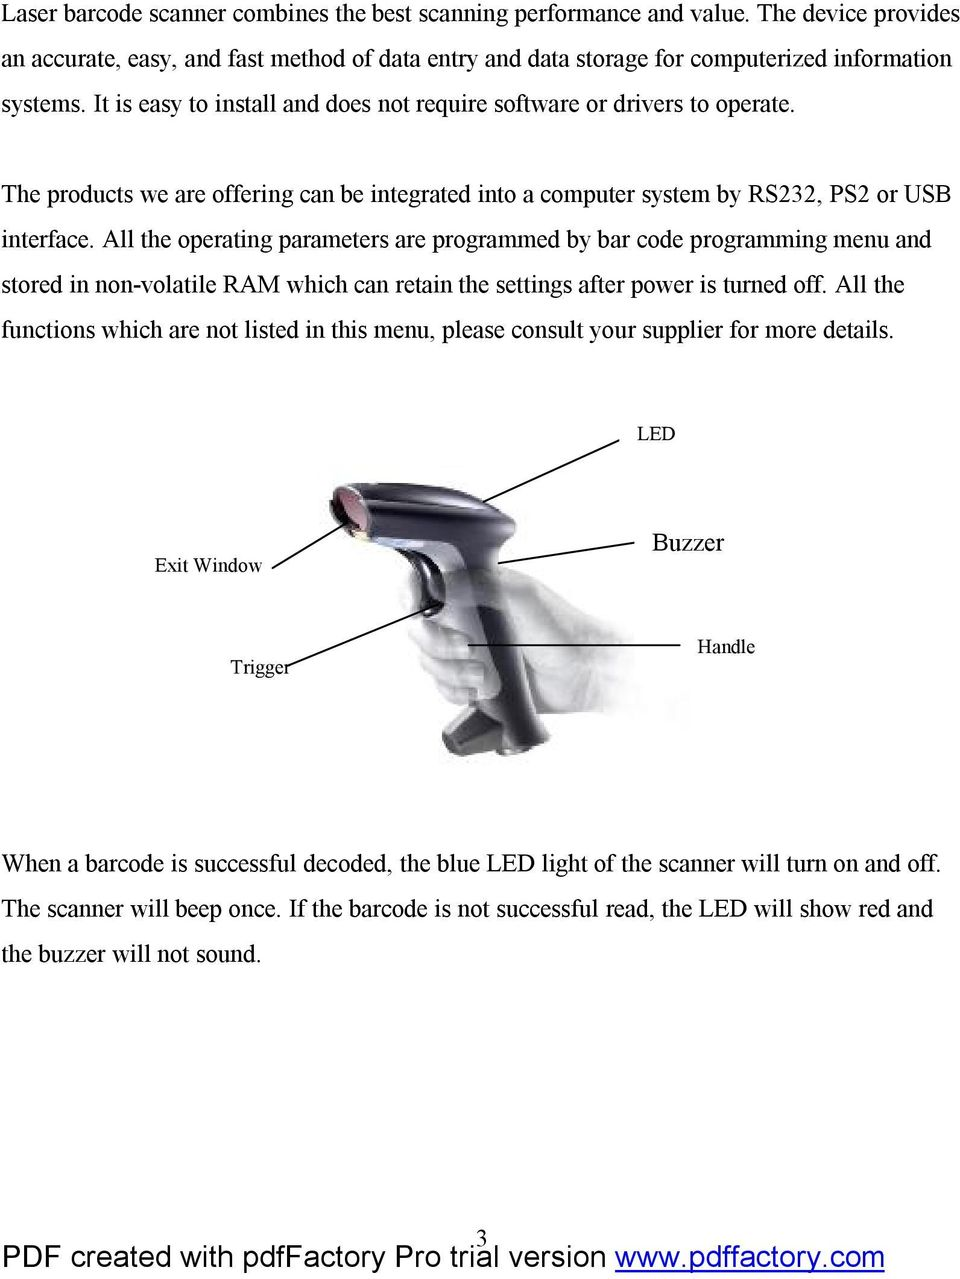 Laser Barcode Scanner User s Manual - PDF